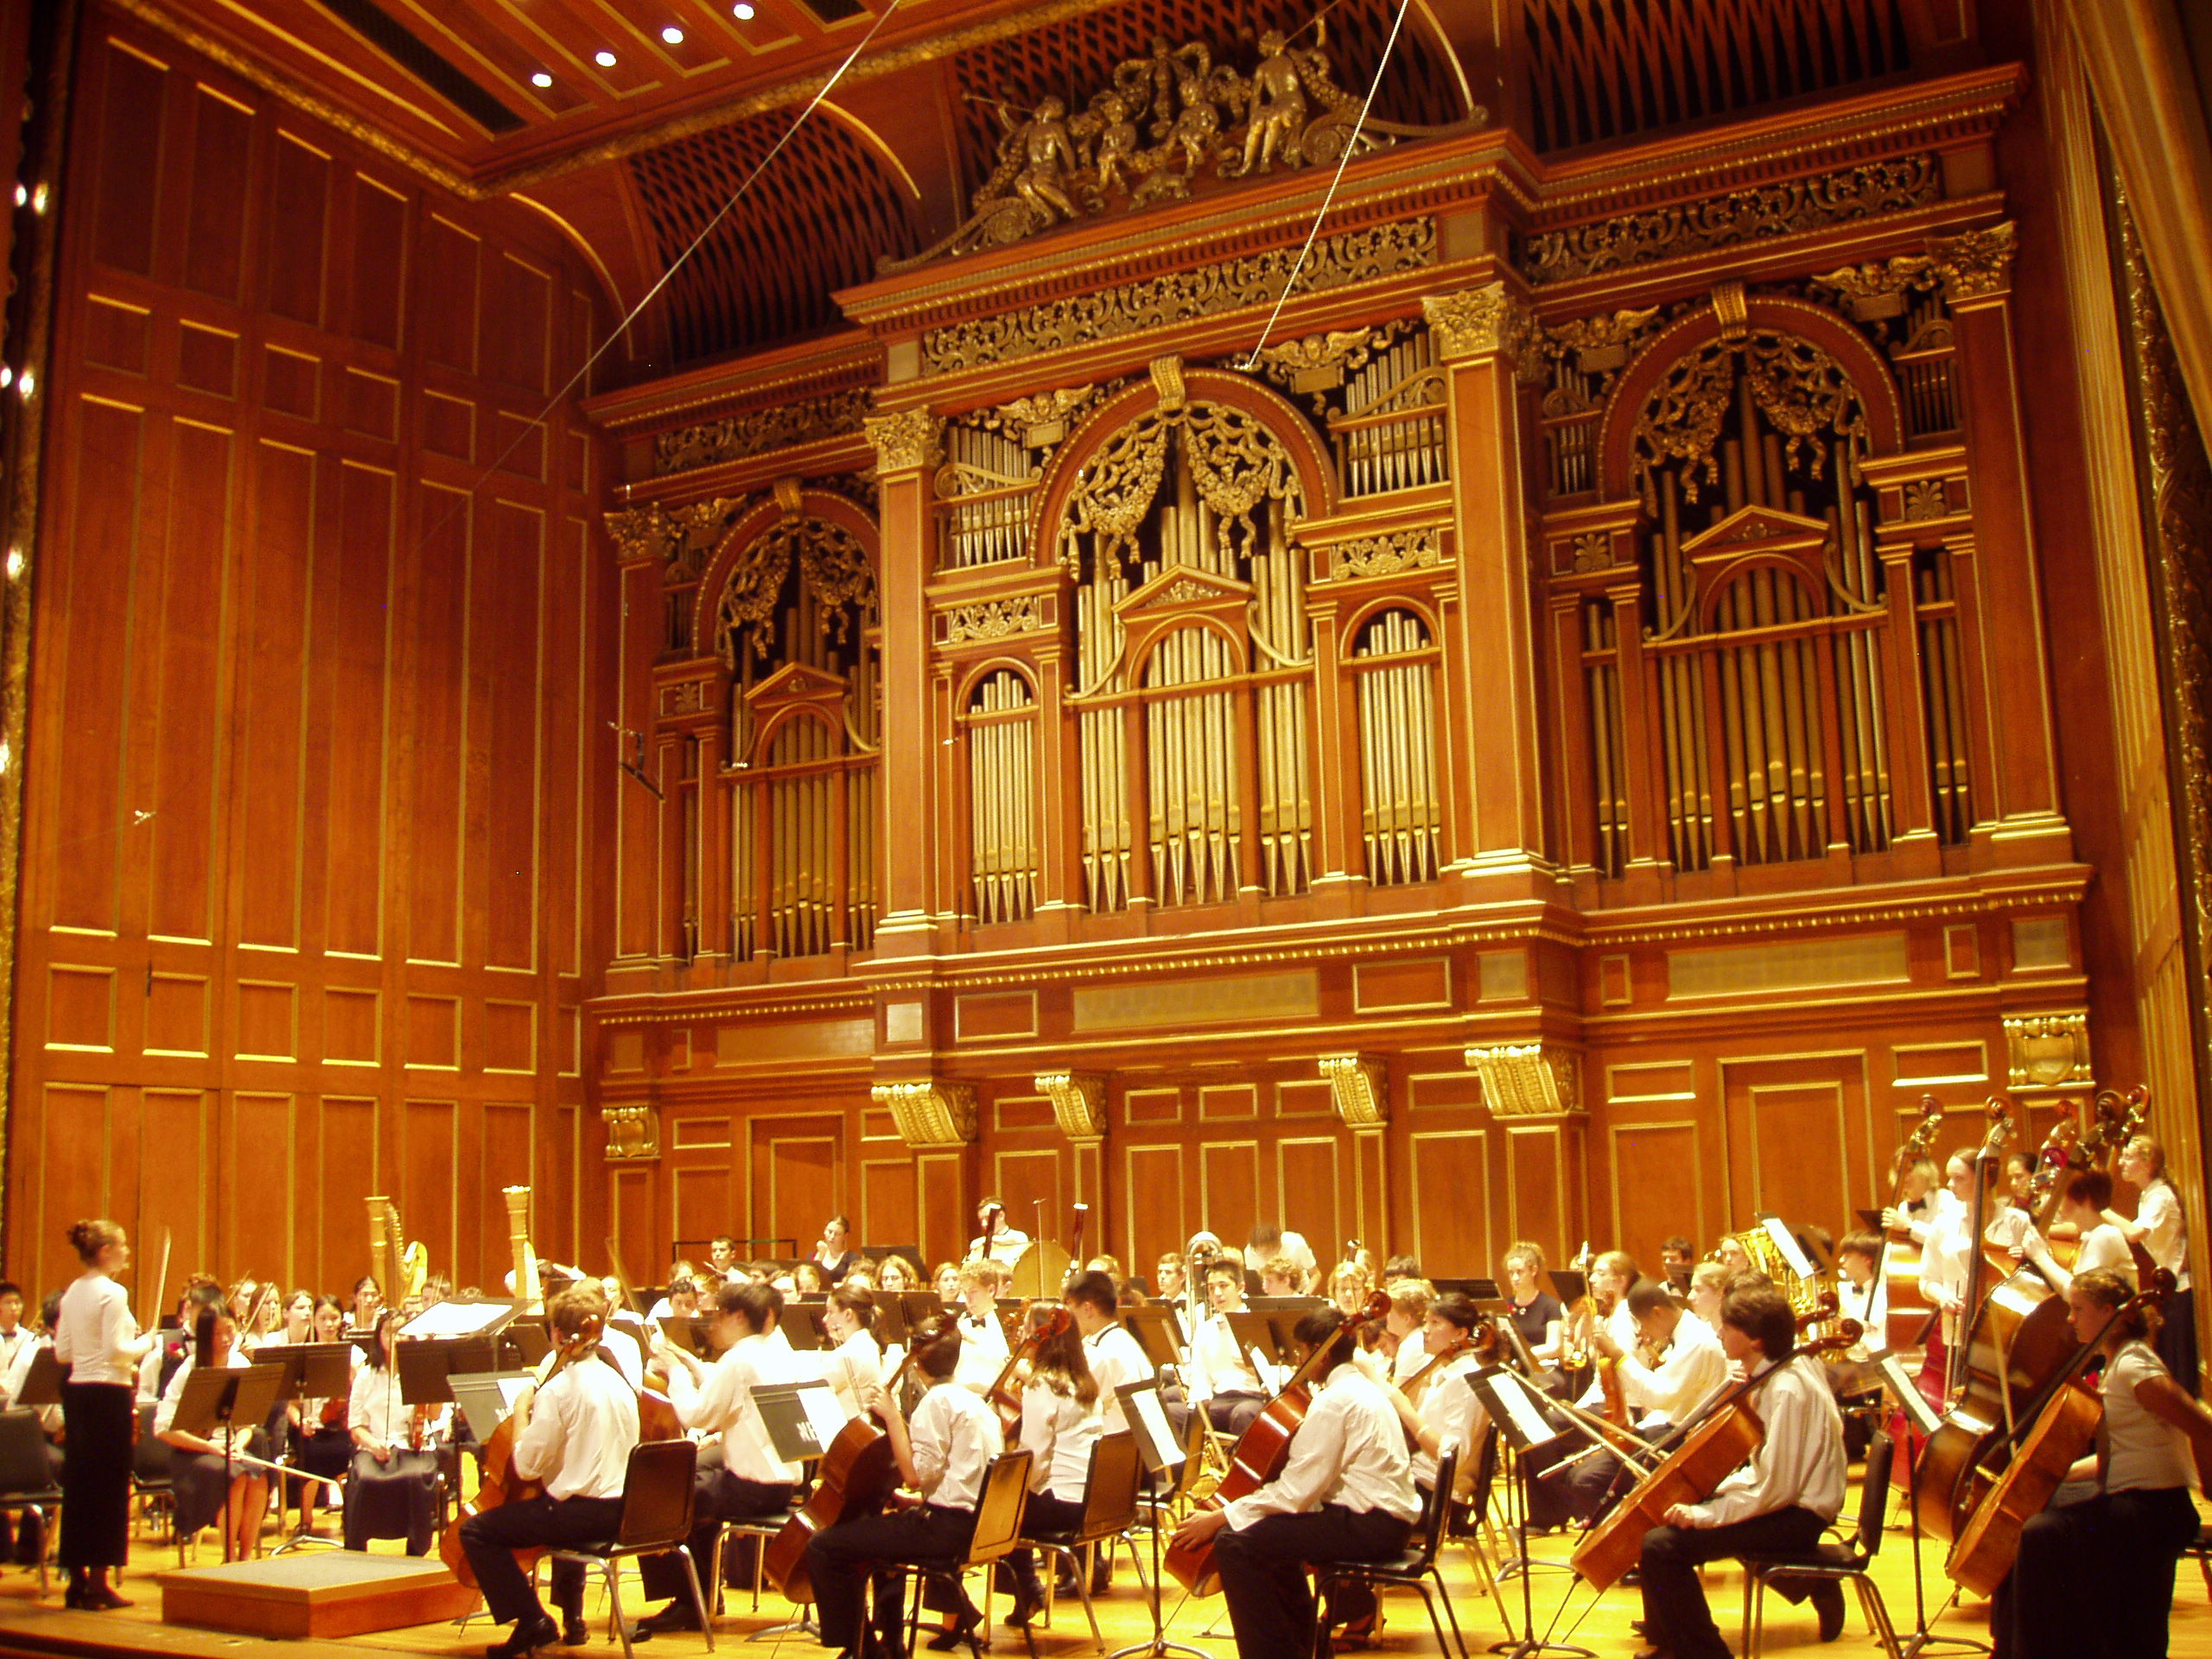 File:Greater Boston Youth Symphony Orchestra in Jordan Hall JPG